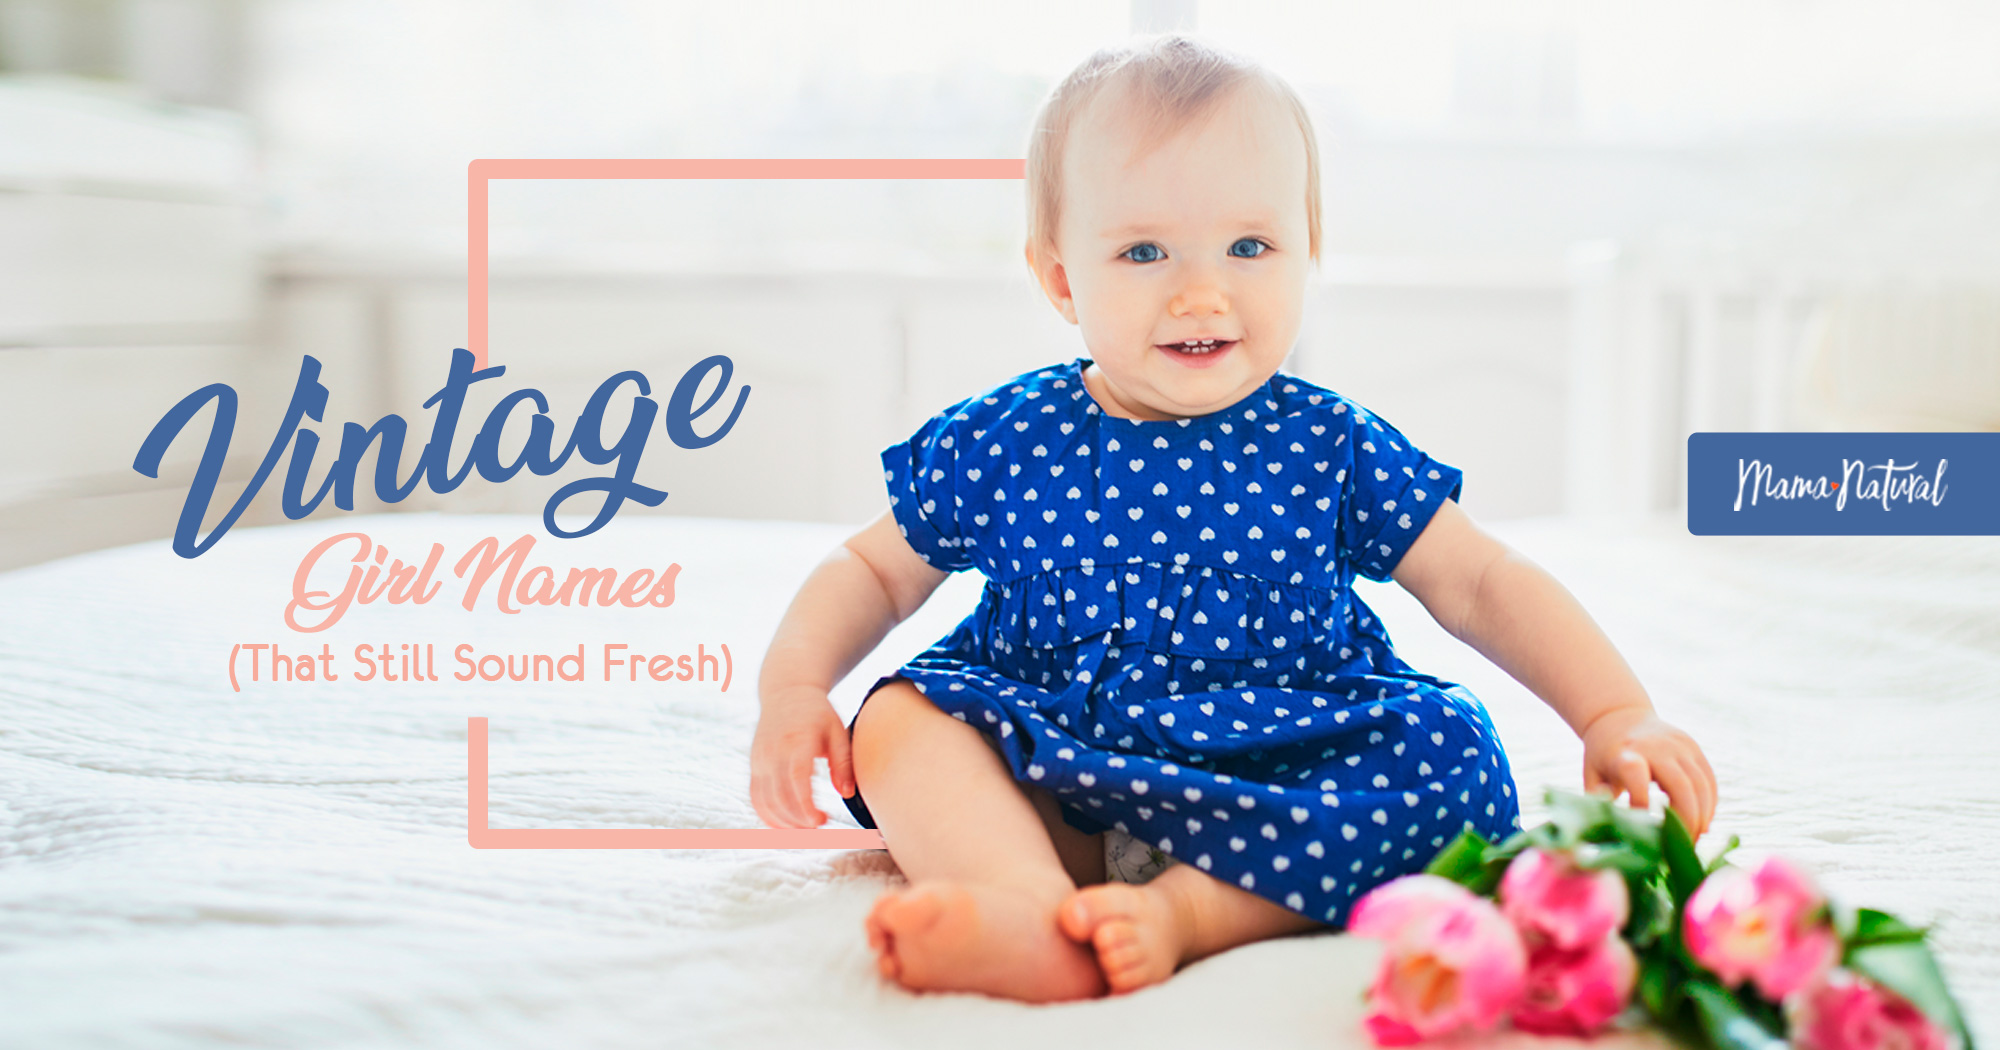 e6e4e1d7 Vintage Girl Names (That Still Sound Fresh) | Mama Natural